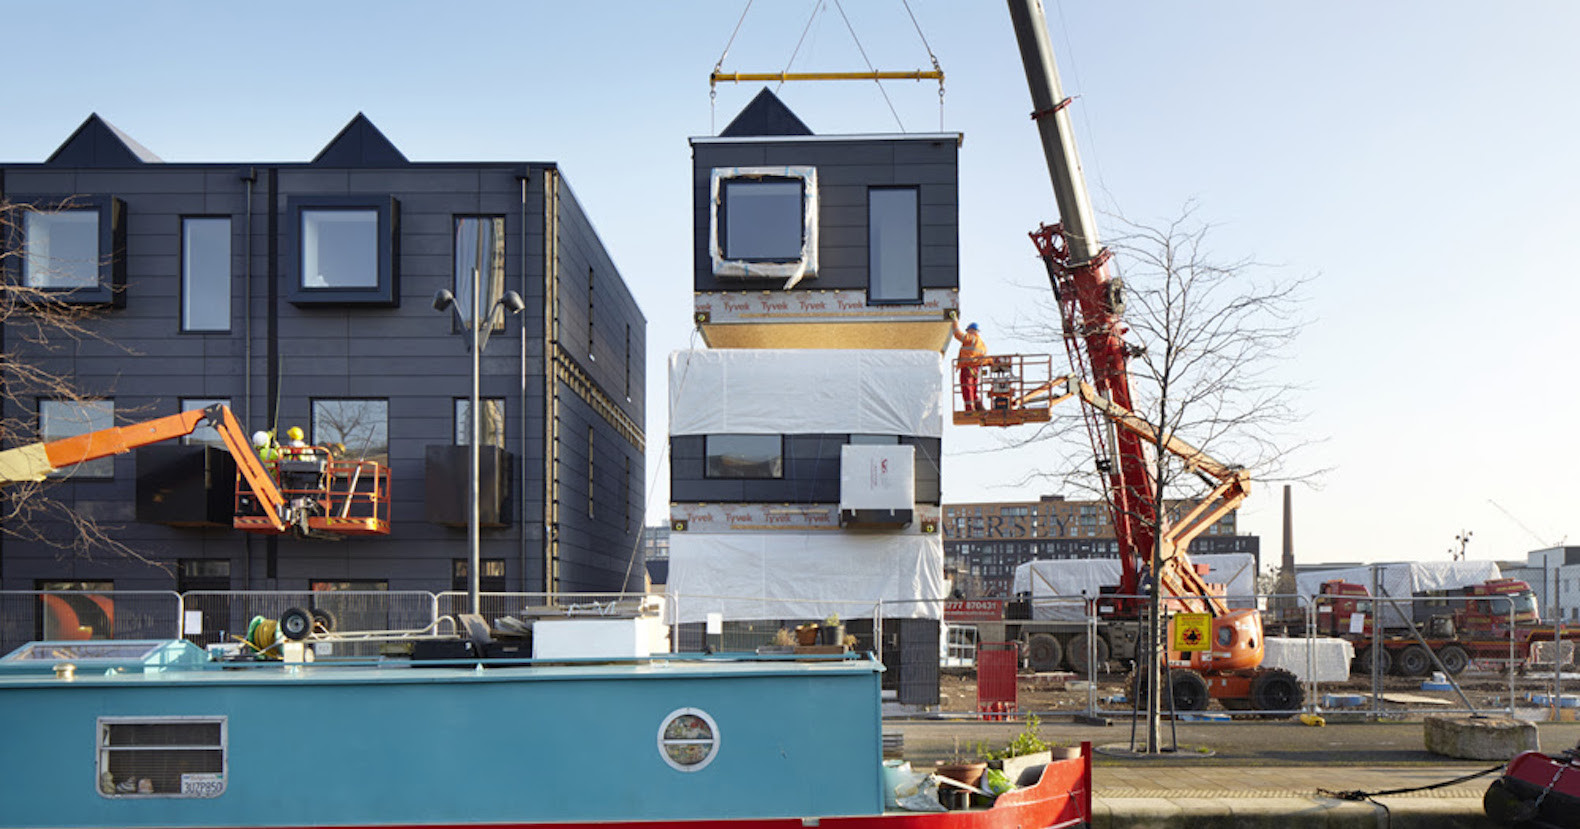 hoUSe-prefab-by-Urban-Splash-and-shedkm-7-e1457580761422.jpg